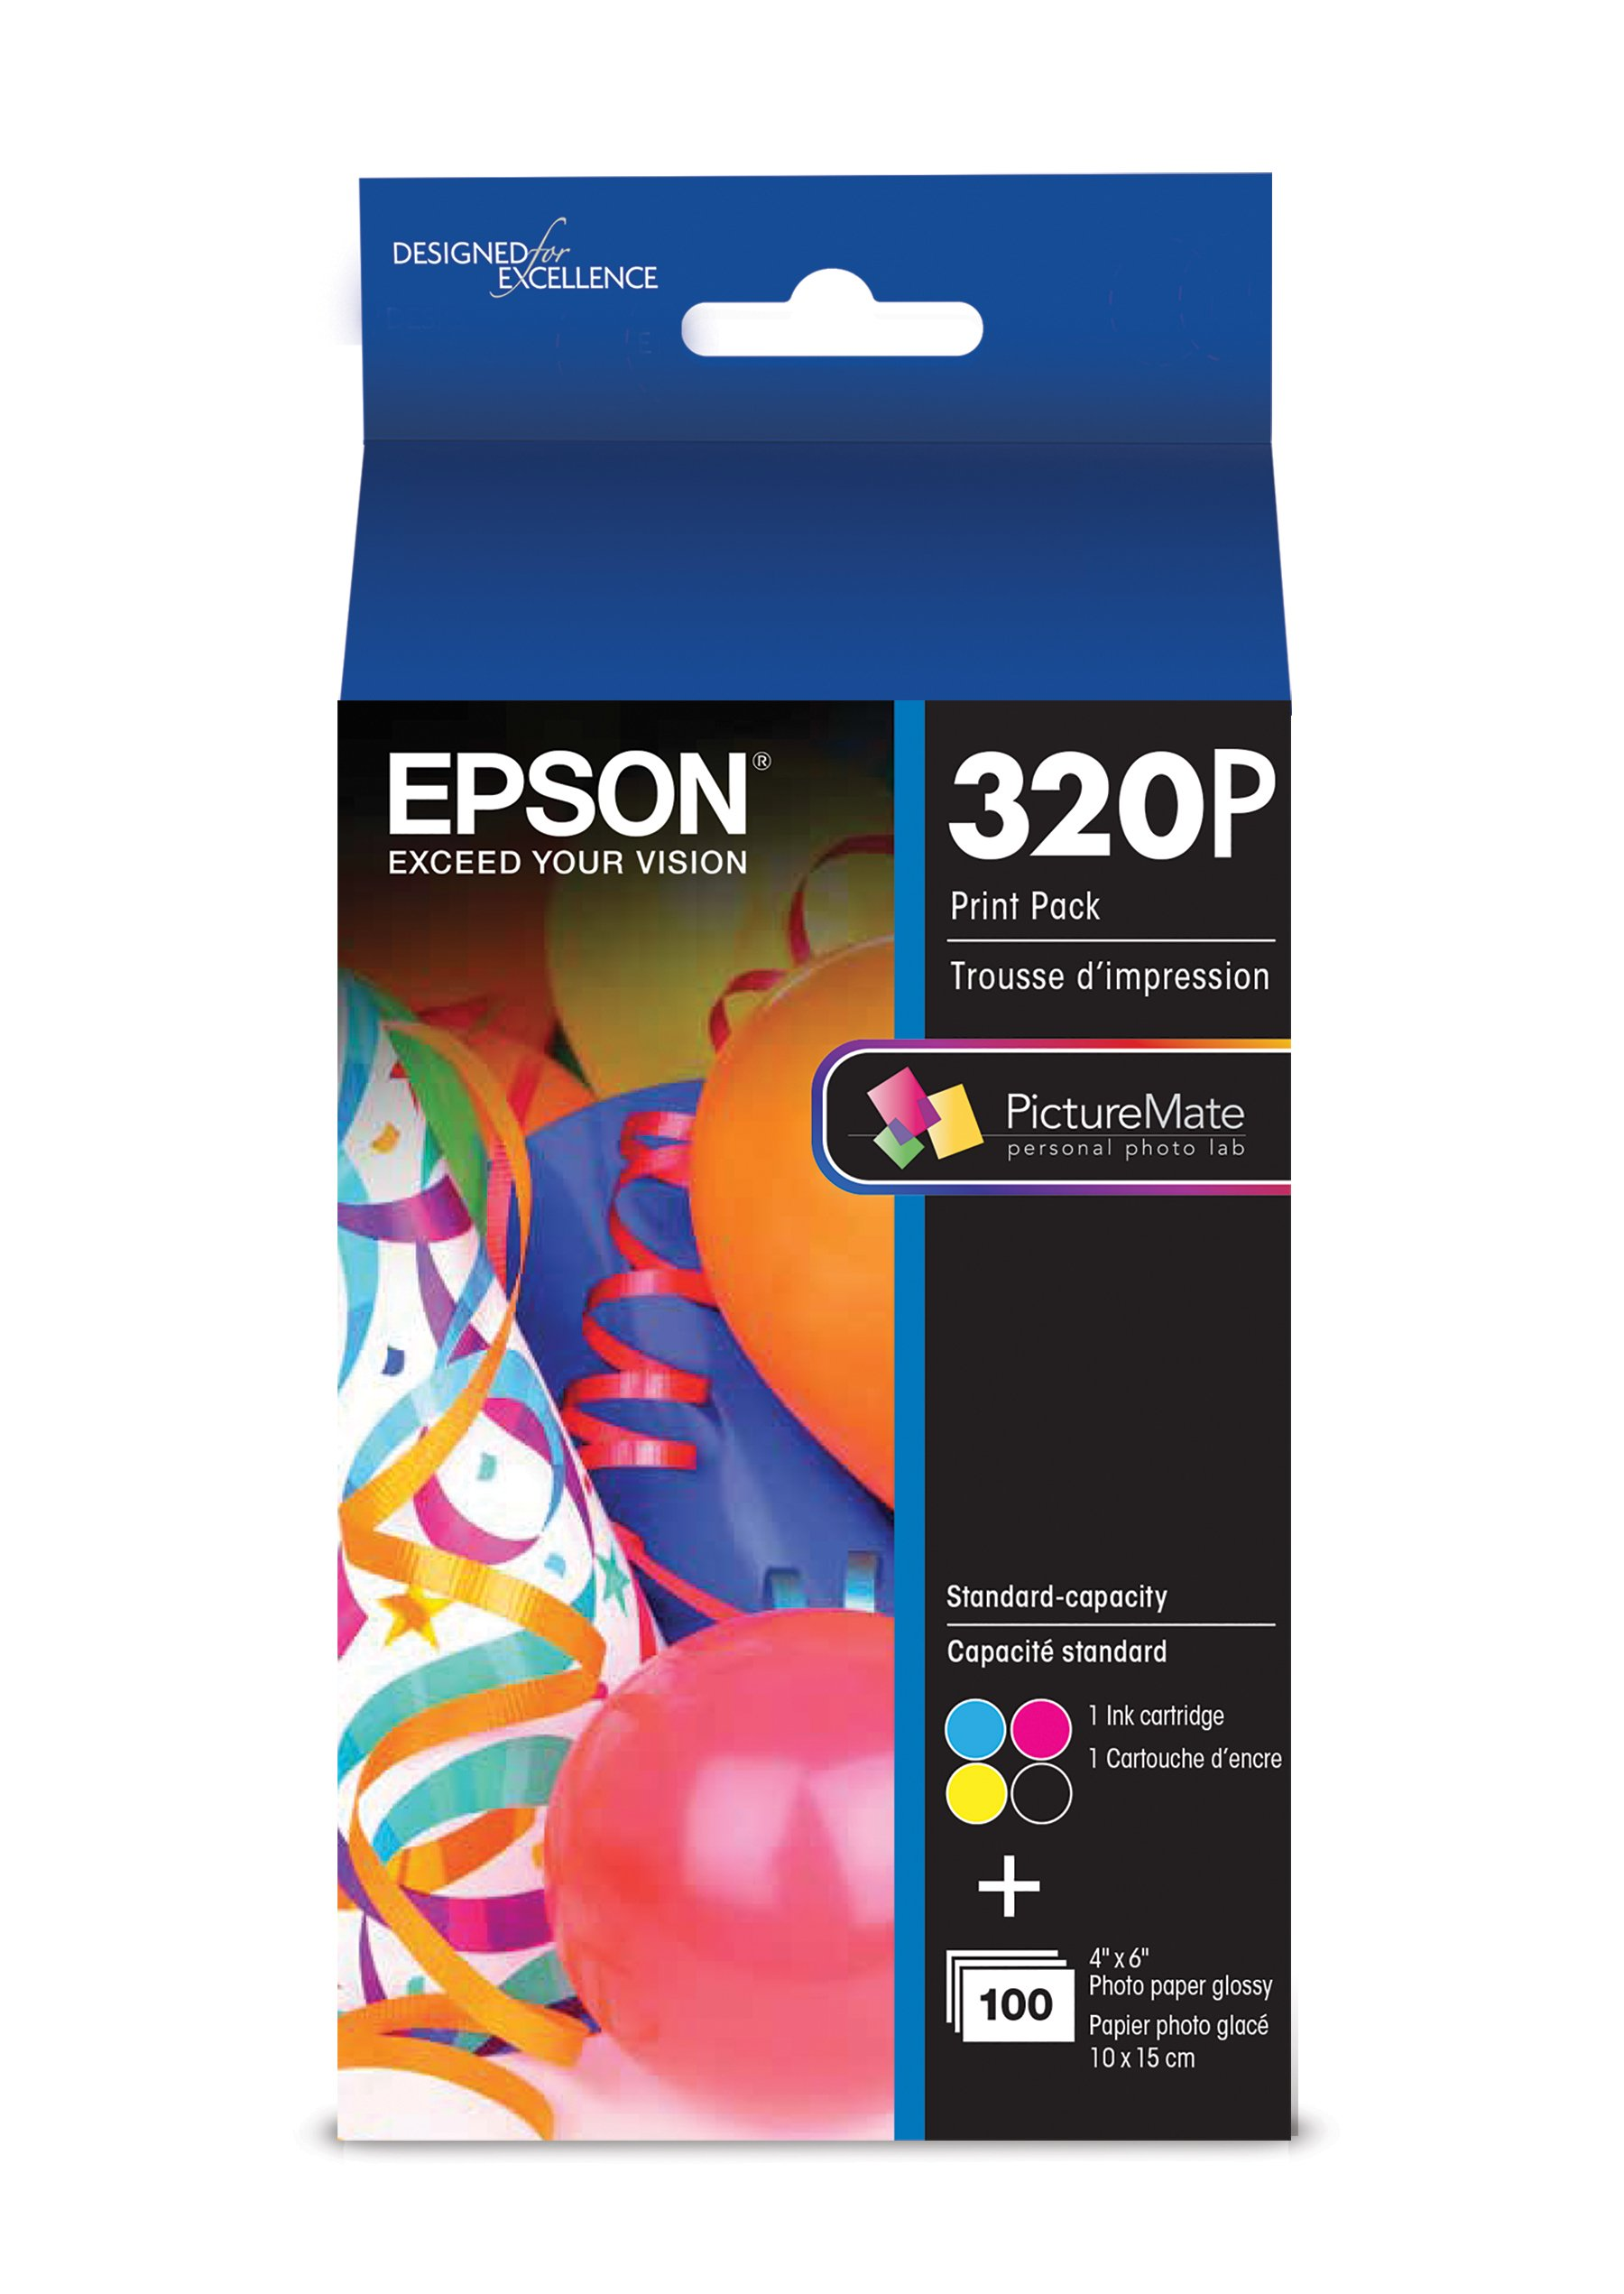 Epson T320P PictureMate ColorCartridge & Print Pack Ink